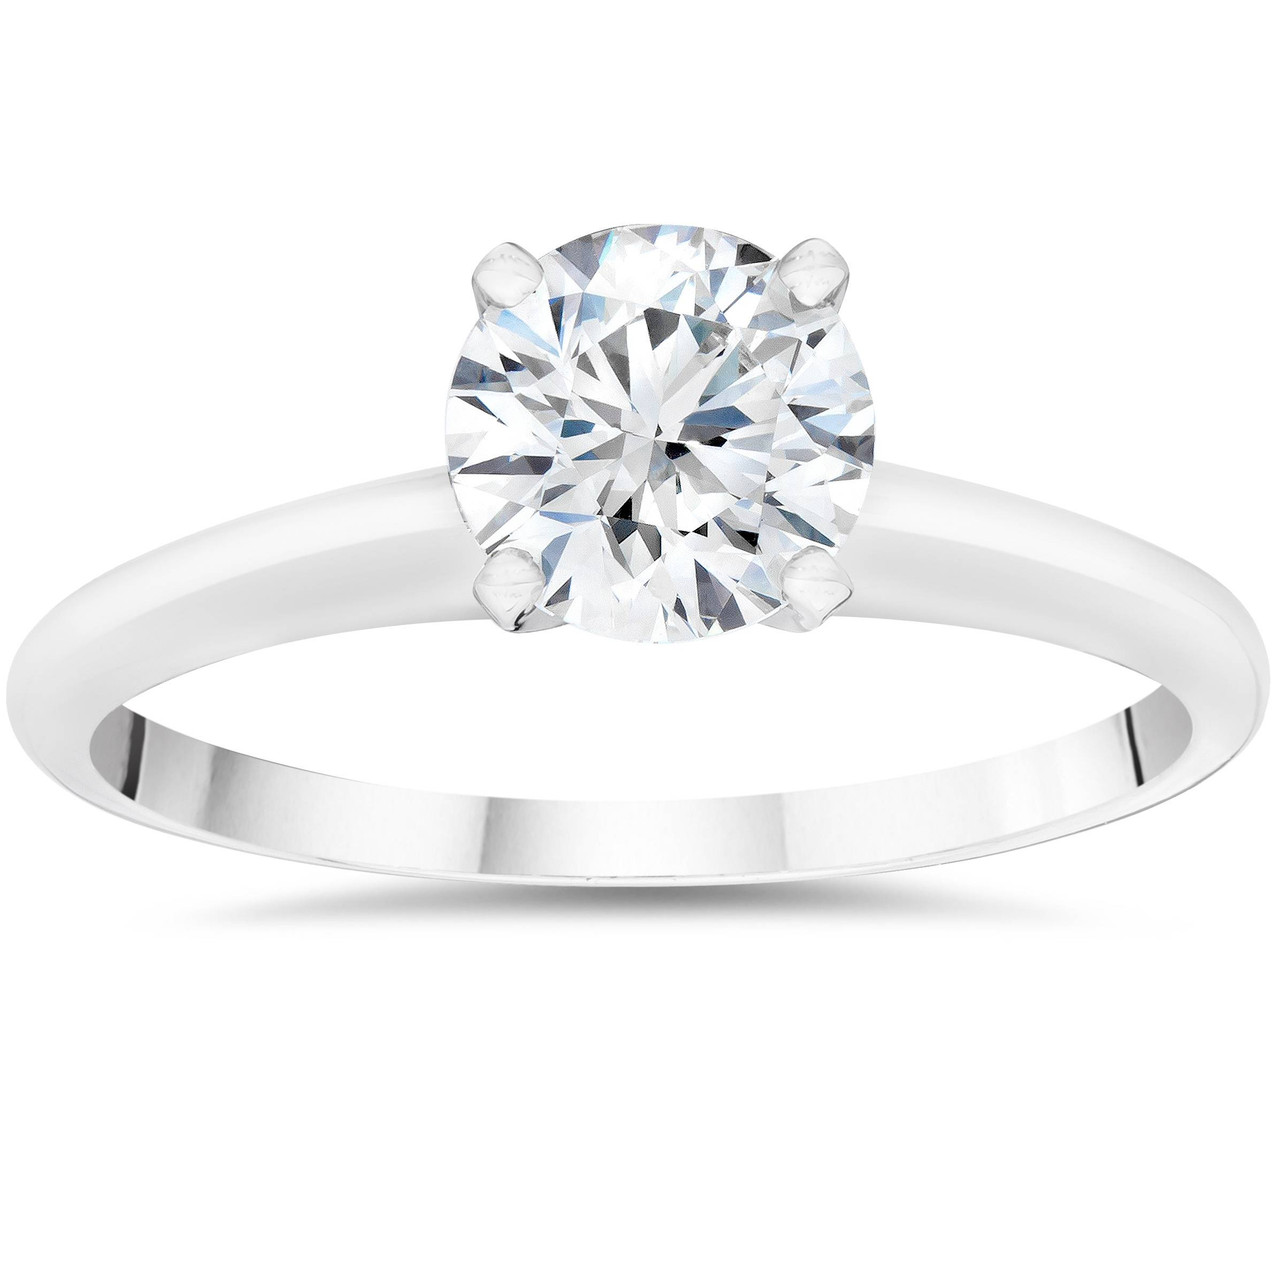 1ct Lab Grown Diamond Solitaire Engagement Ring White Gold